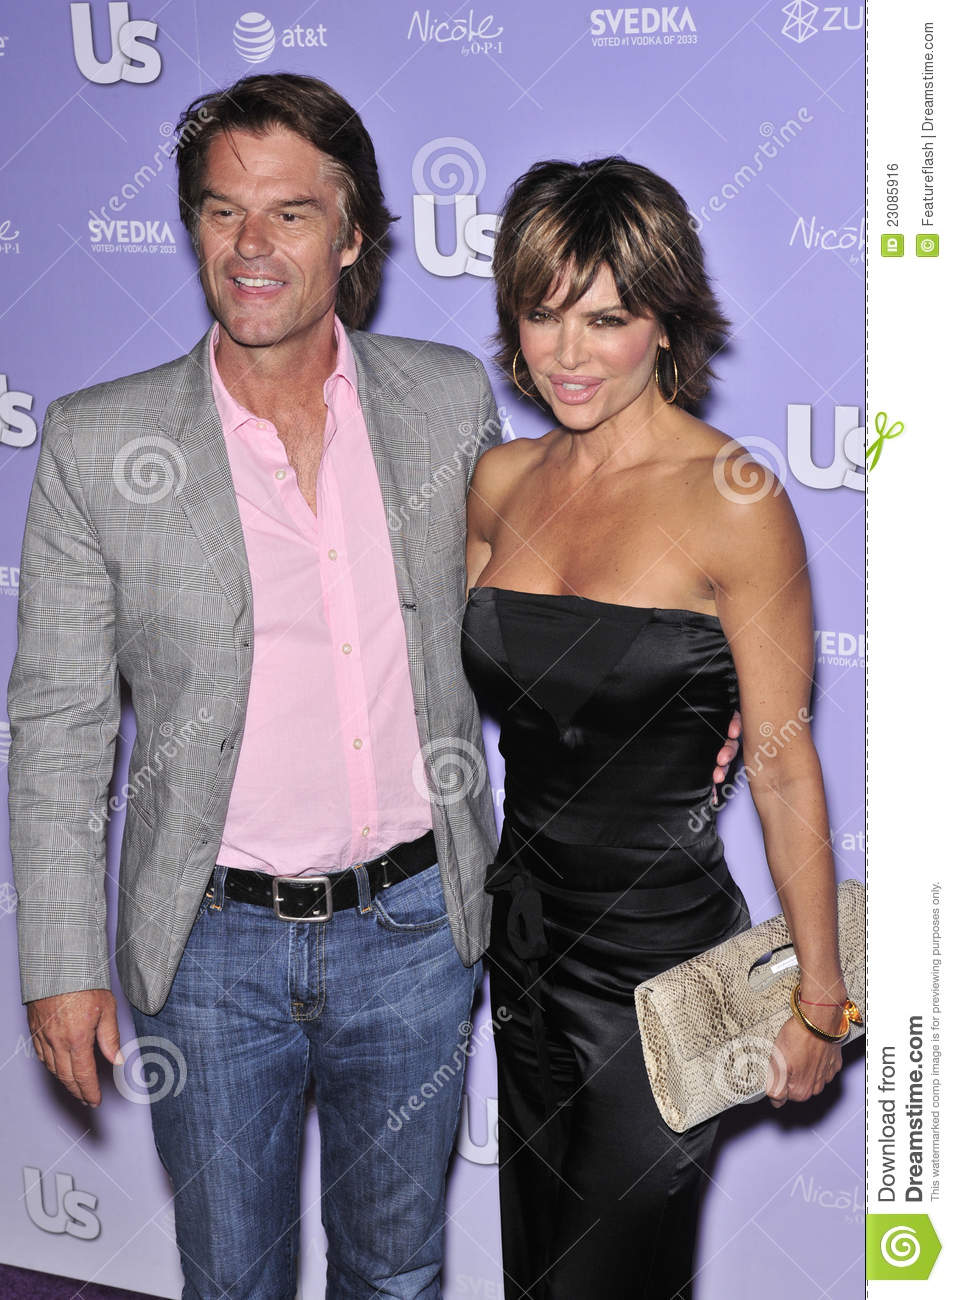 Charming question Lisa rinna hot not